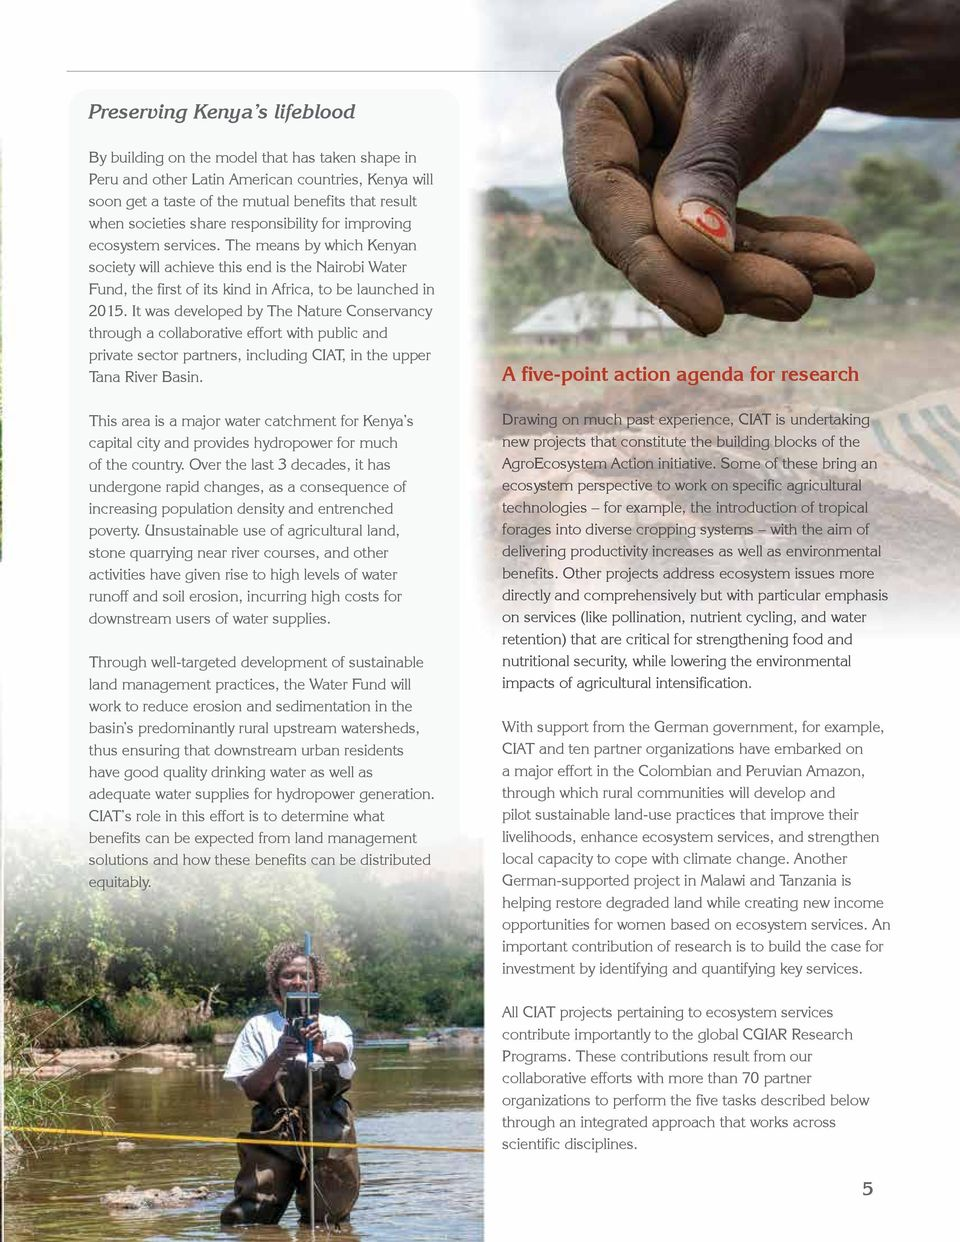 It was developed by The Nature Conservancy through a collaborative effort with public and private sector partners, including CIAT, in the upper Tana River Basin.